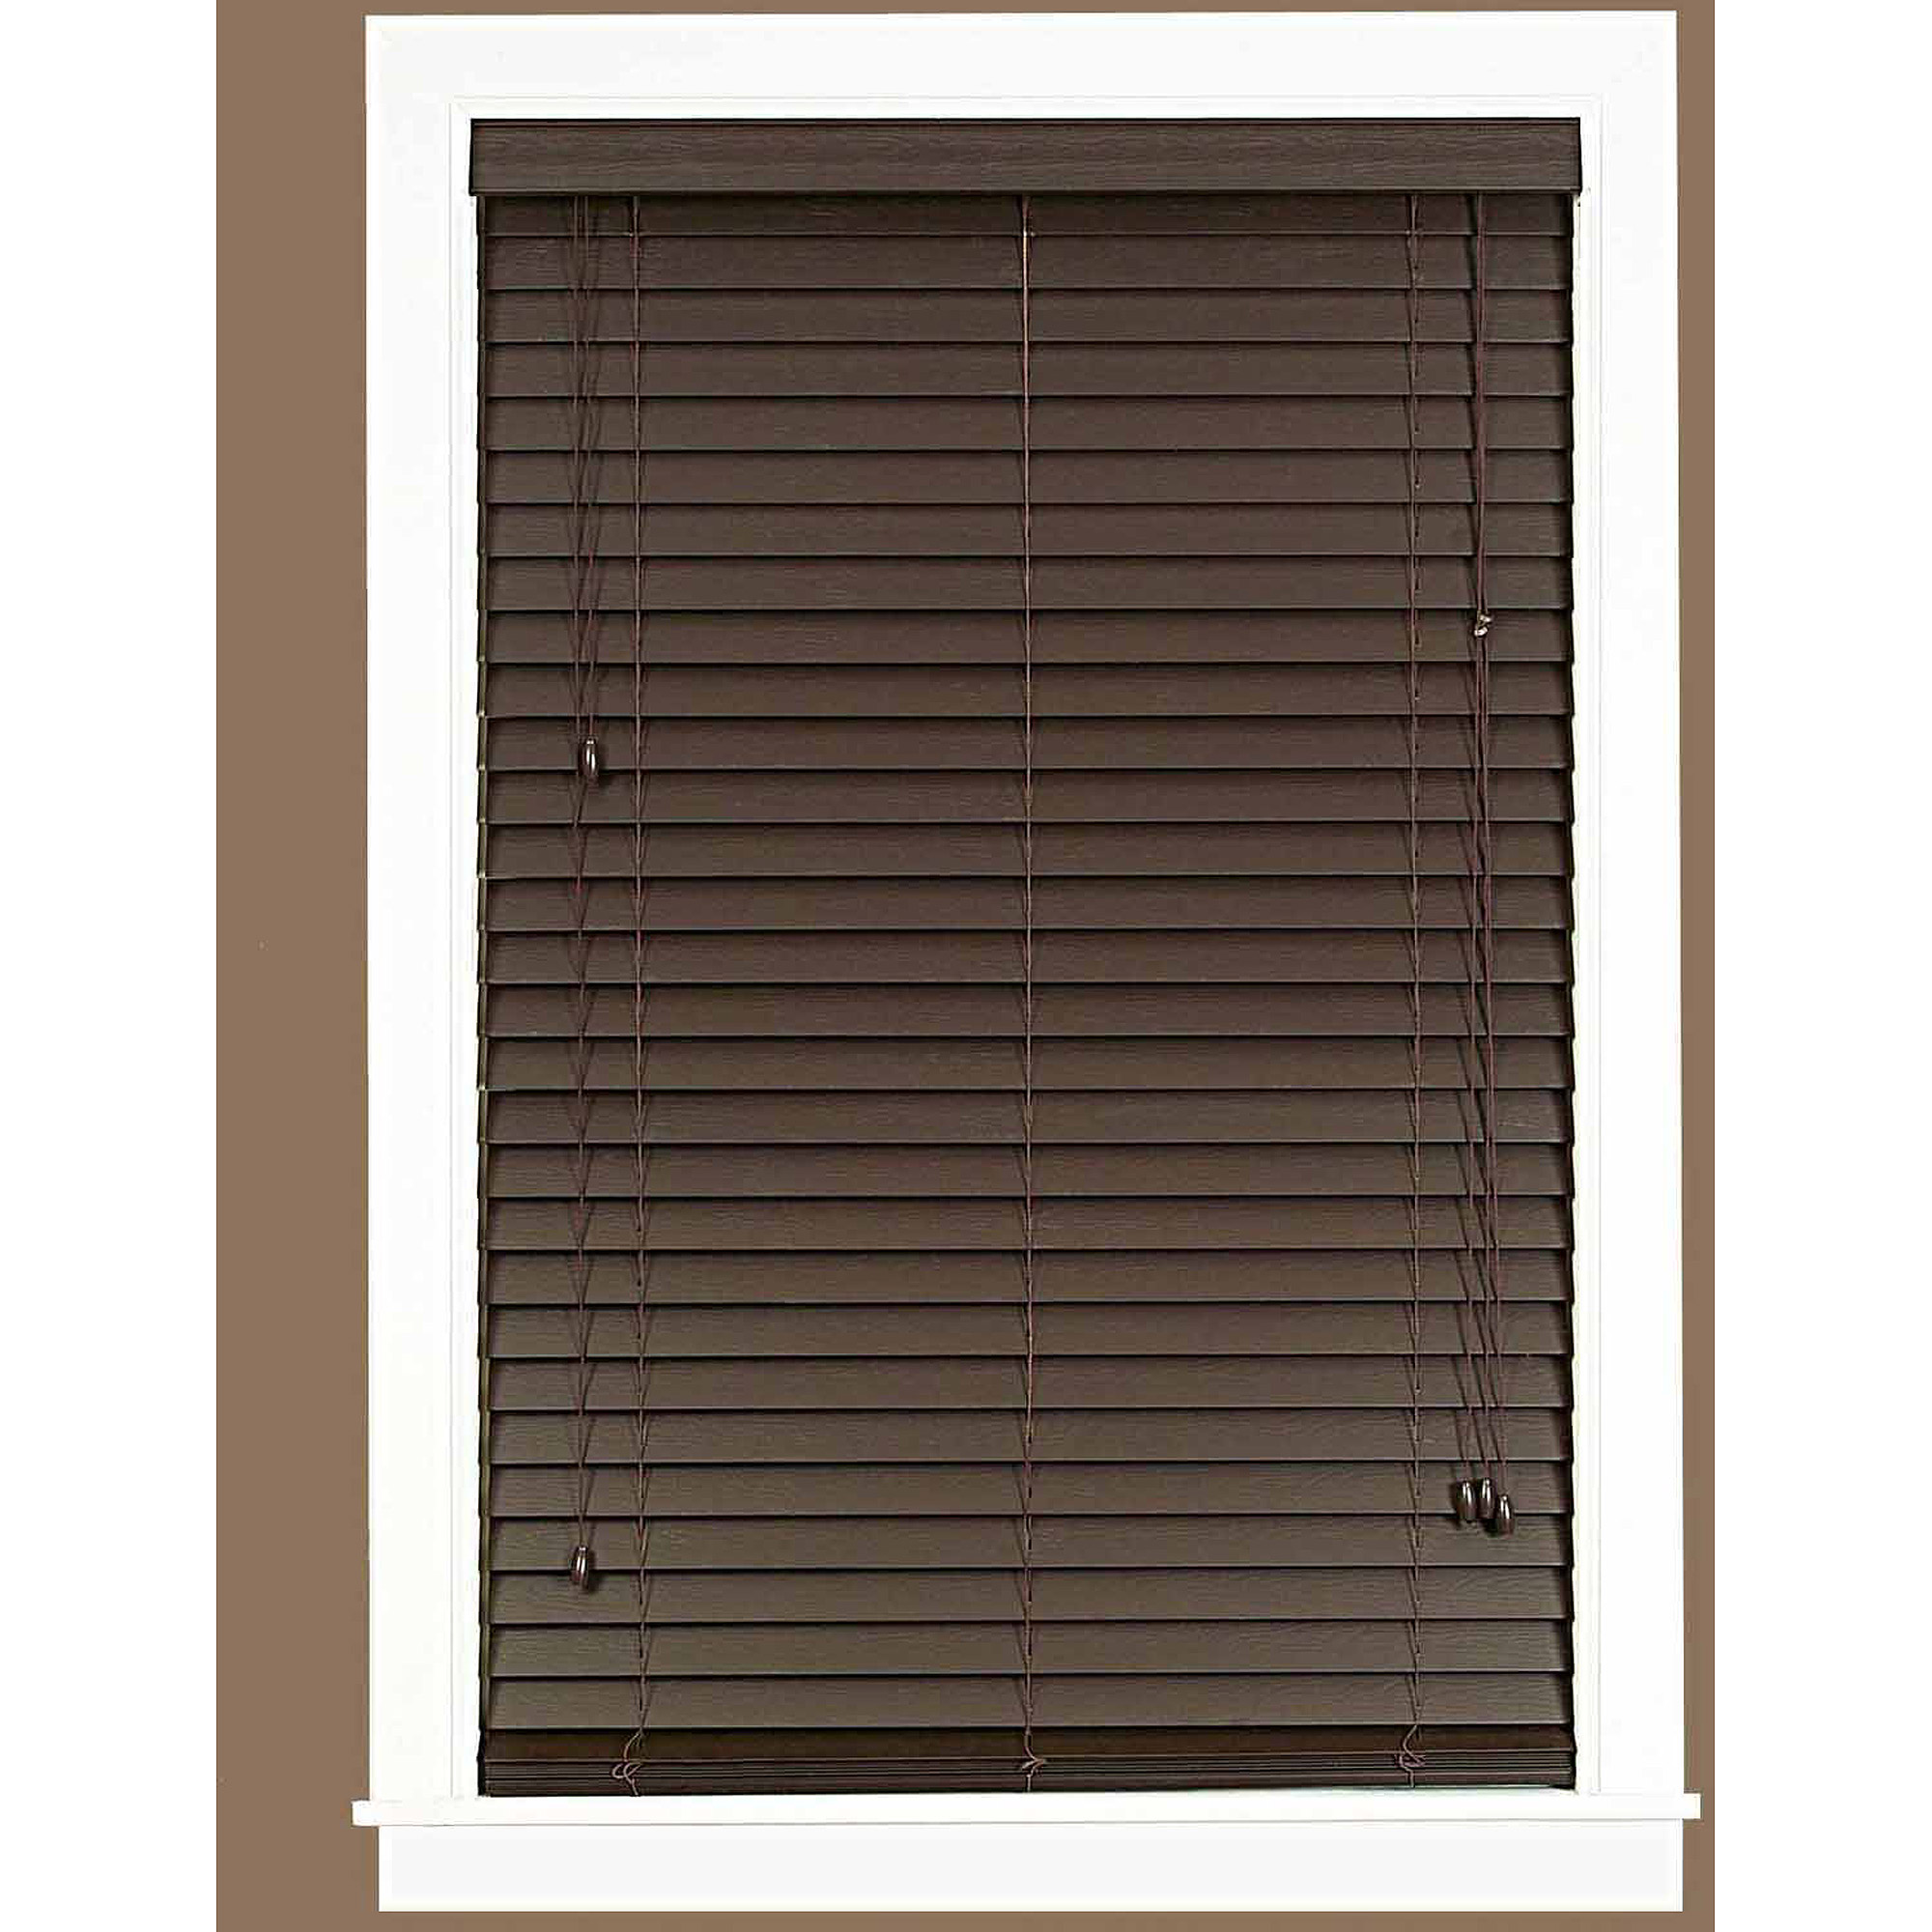 Bali 2 Room Darkening Faux Wood Blind White Available In Multiple Sizes Walmart Com